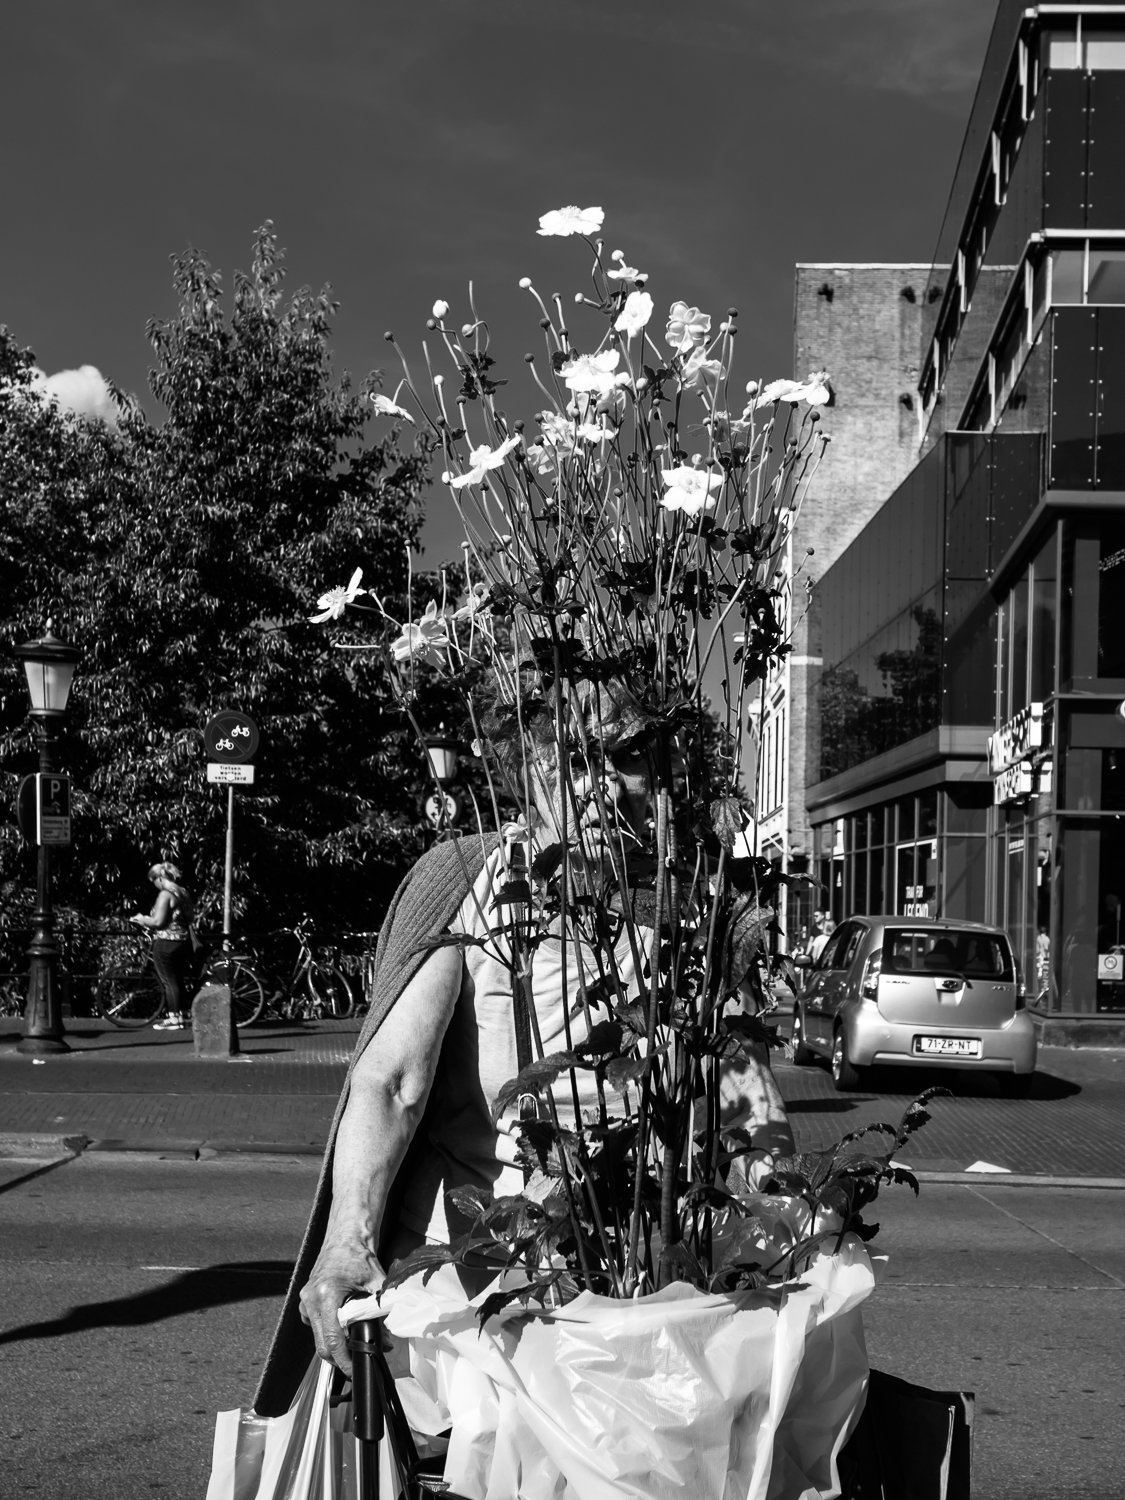 utrecht SEPTEMBER 2016  Shot taken from the Oudegracht..  When I saw this woman hidden behind the plant I immediately recognized a new photo for my    Undercover    series.  Shot with Olympus OMD5 Mark 2 and Olympus 17mm f/1.8